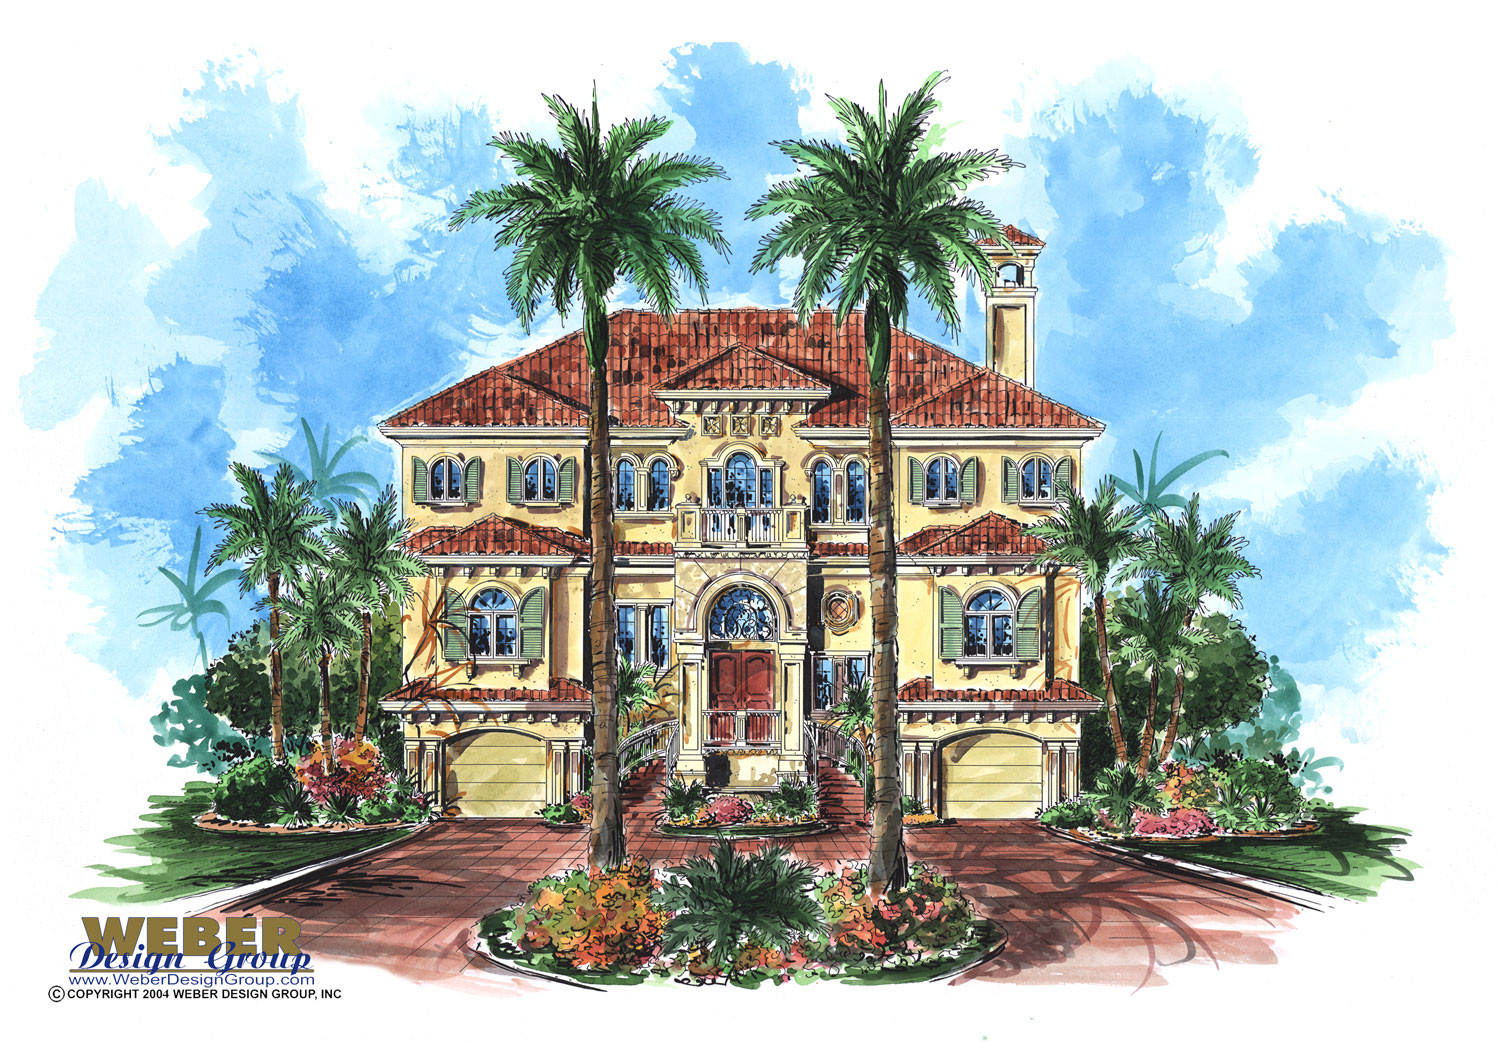 Mediterranean house plan 3 story luxury beach home floor plan for 3 story beach house floor plans